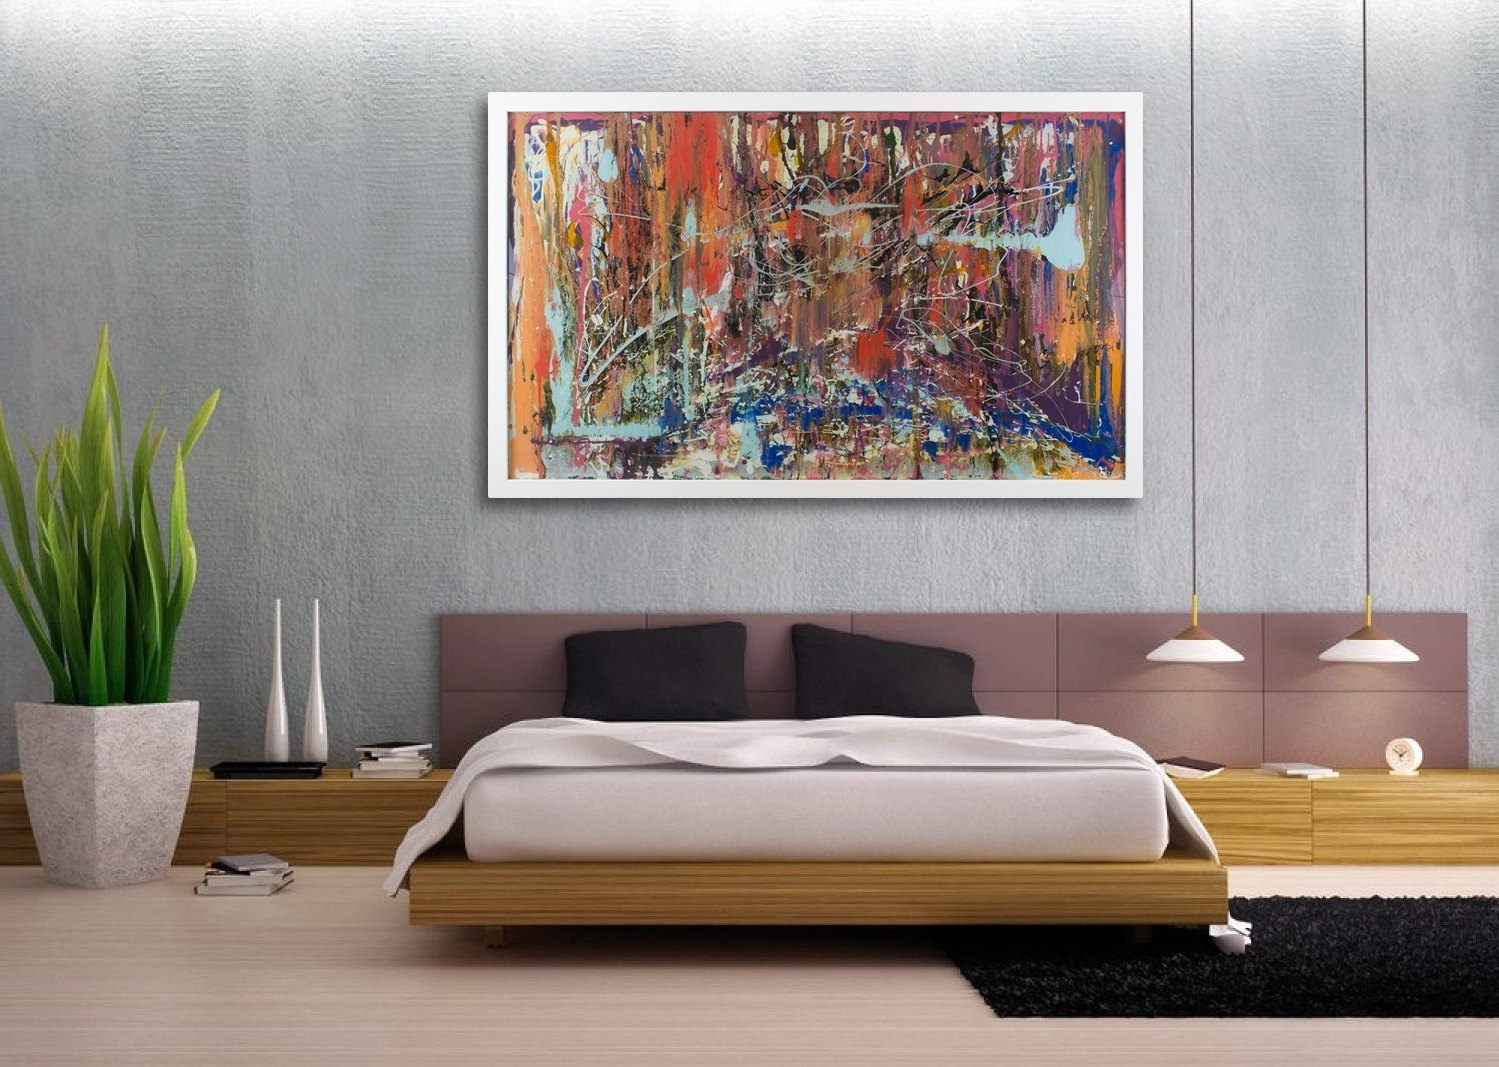 Incredible Wilmos Kovacs Abstract Painting On Metal Sculpture Within Most Current Large Abstract Wall Art (View 13 of 20)